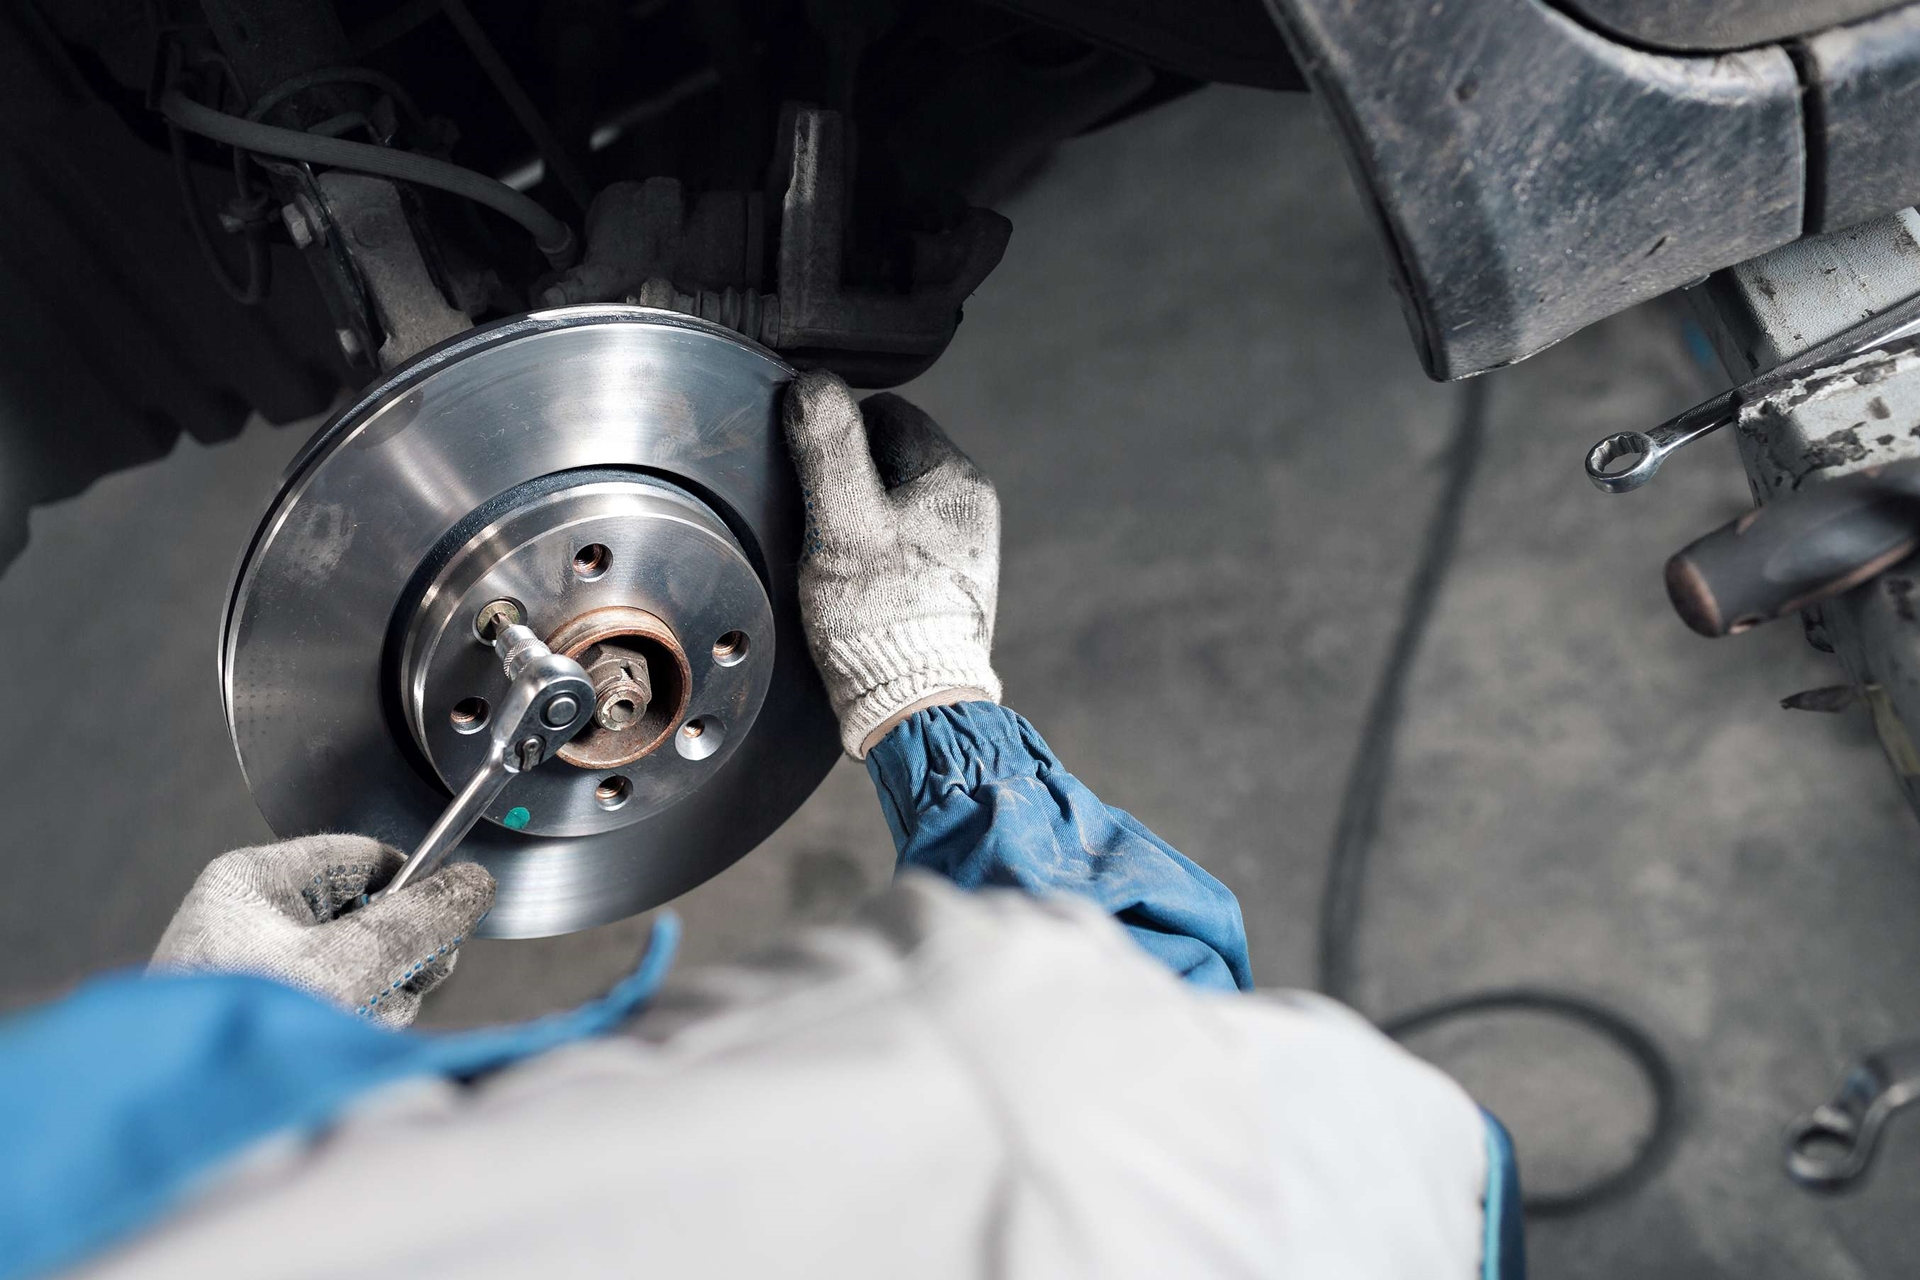 For a LIMITED TIME ONLY - Cars and trucks get 10% off any brake job!